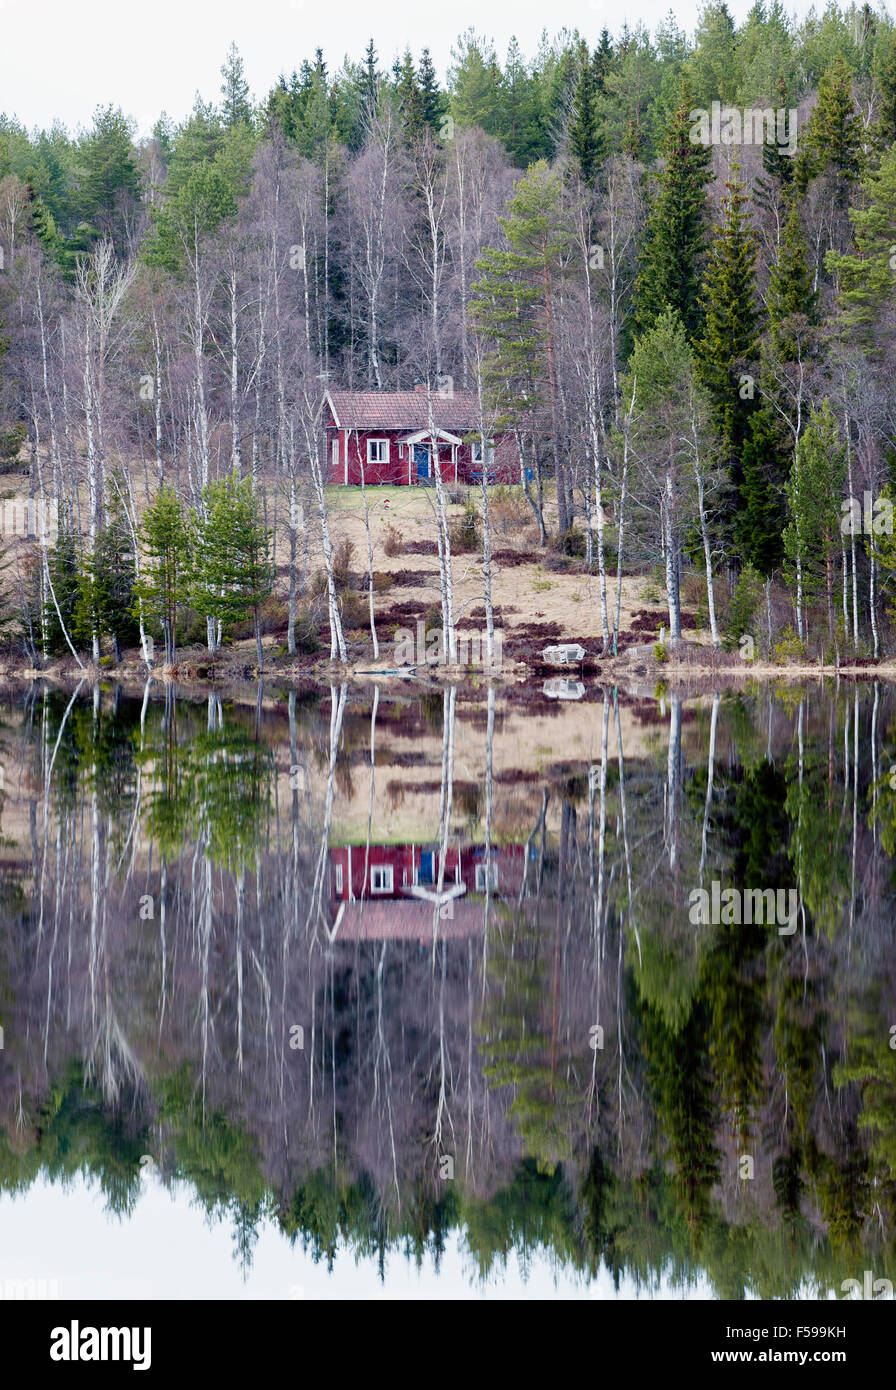 Croft by the lake, Sweden - Stock Image